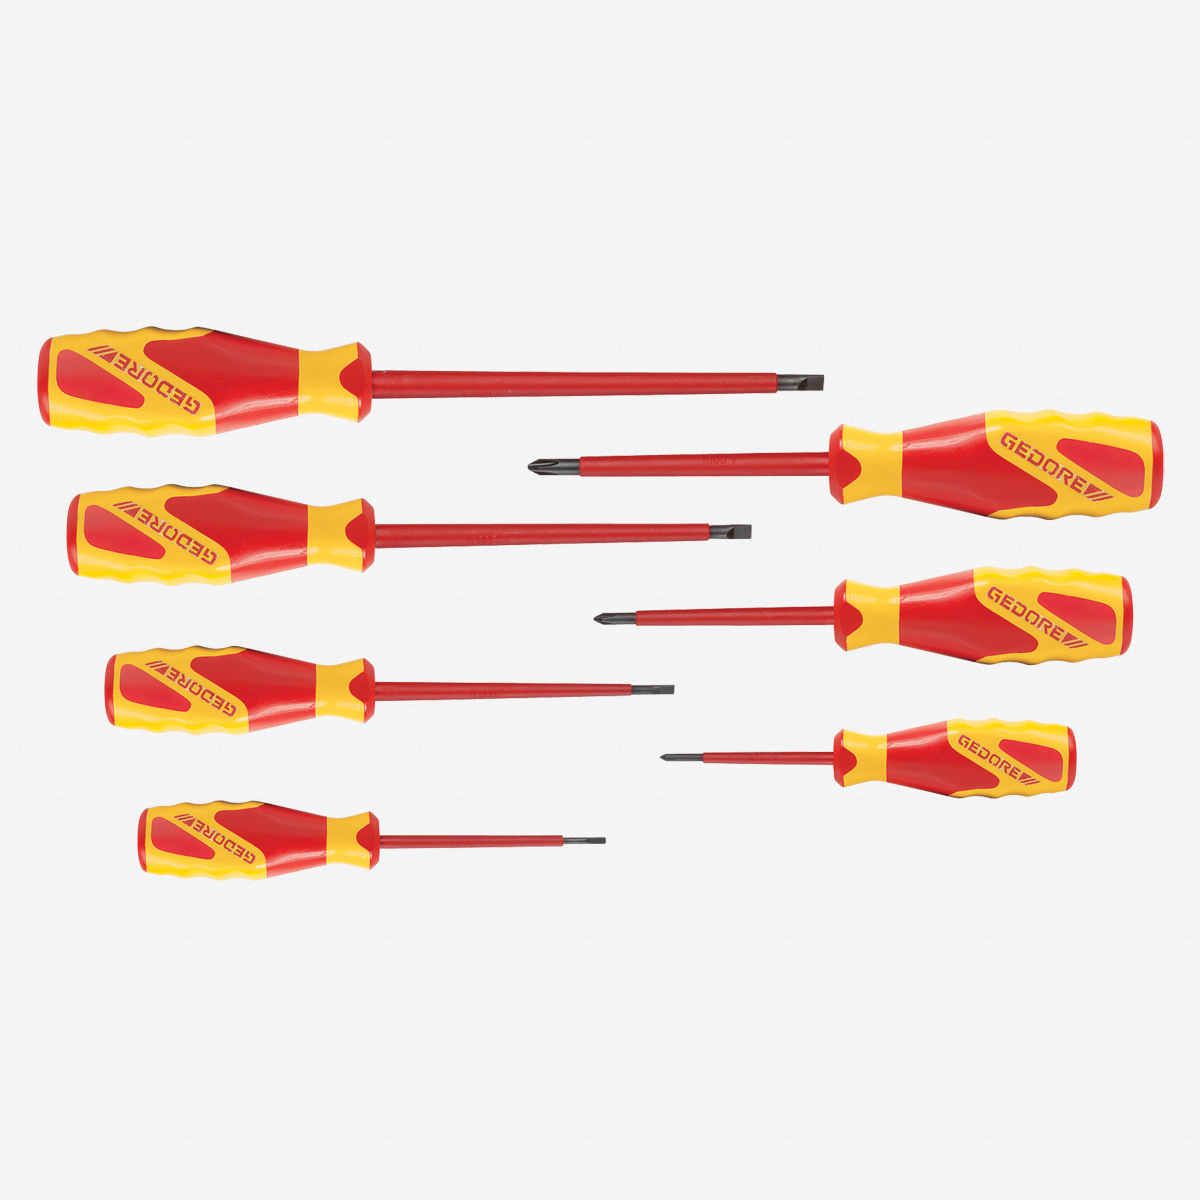 Gedore VDE 2170-2160 PH-077 VDE Screwdriver set 7 pcs IS 2.5-6.5 PH 0-2 - KC Tool